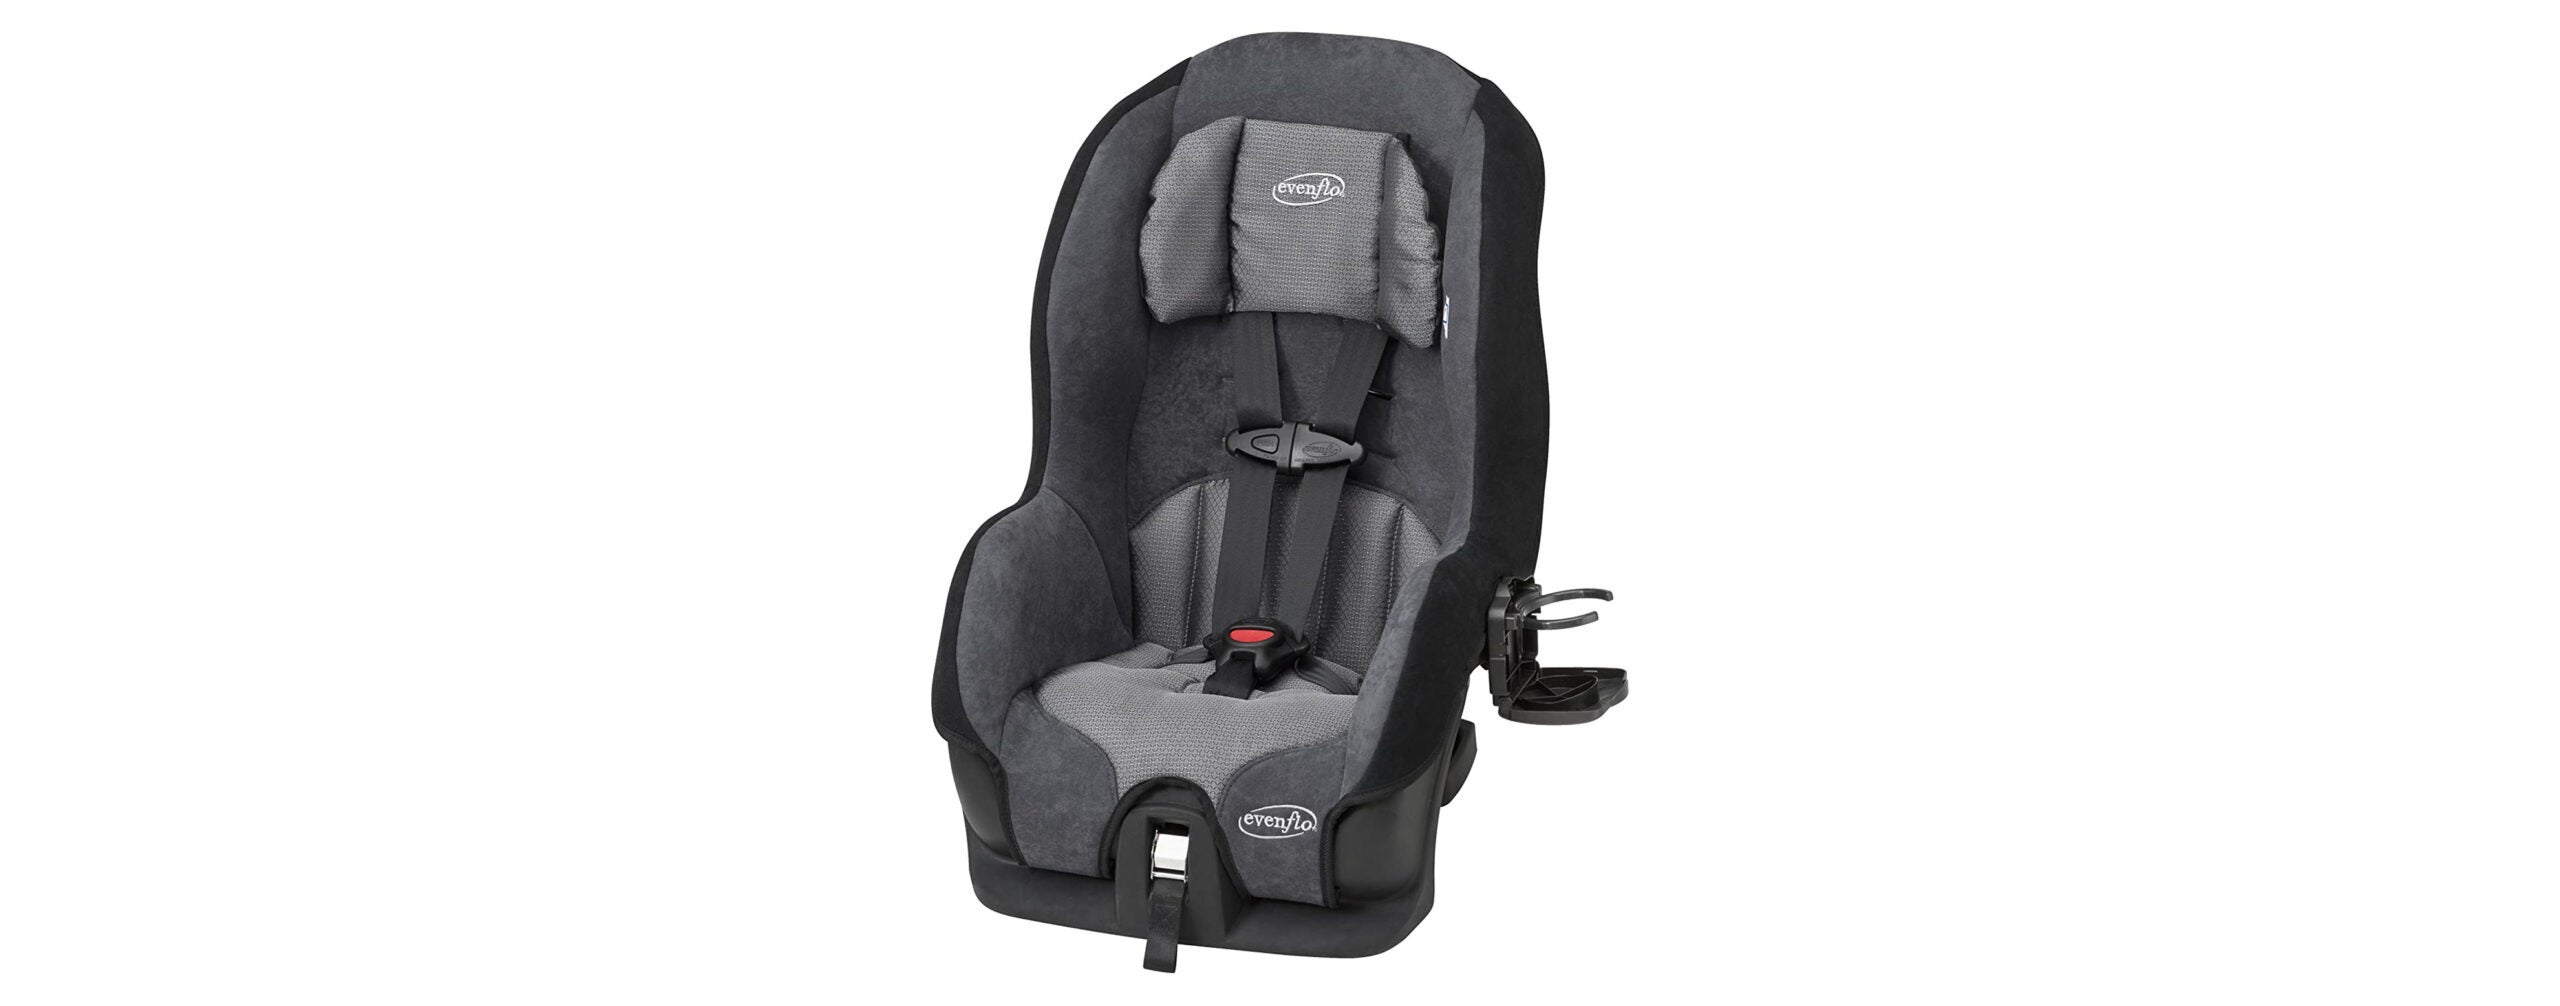 The Best Car Seat For 3-Year-Olds (Review and Buying Guide) in 2021